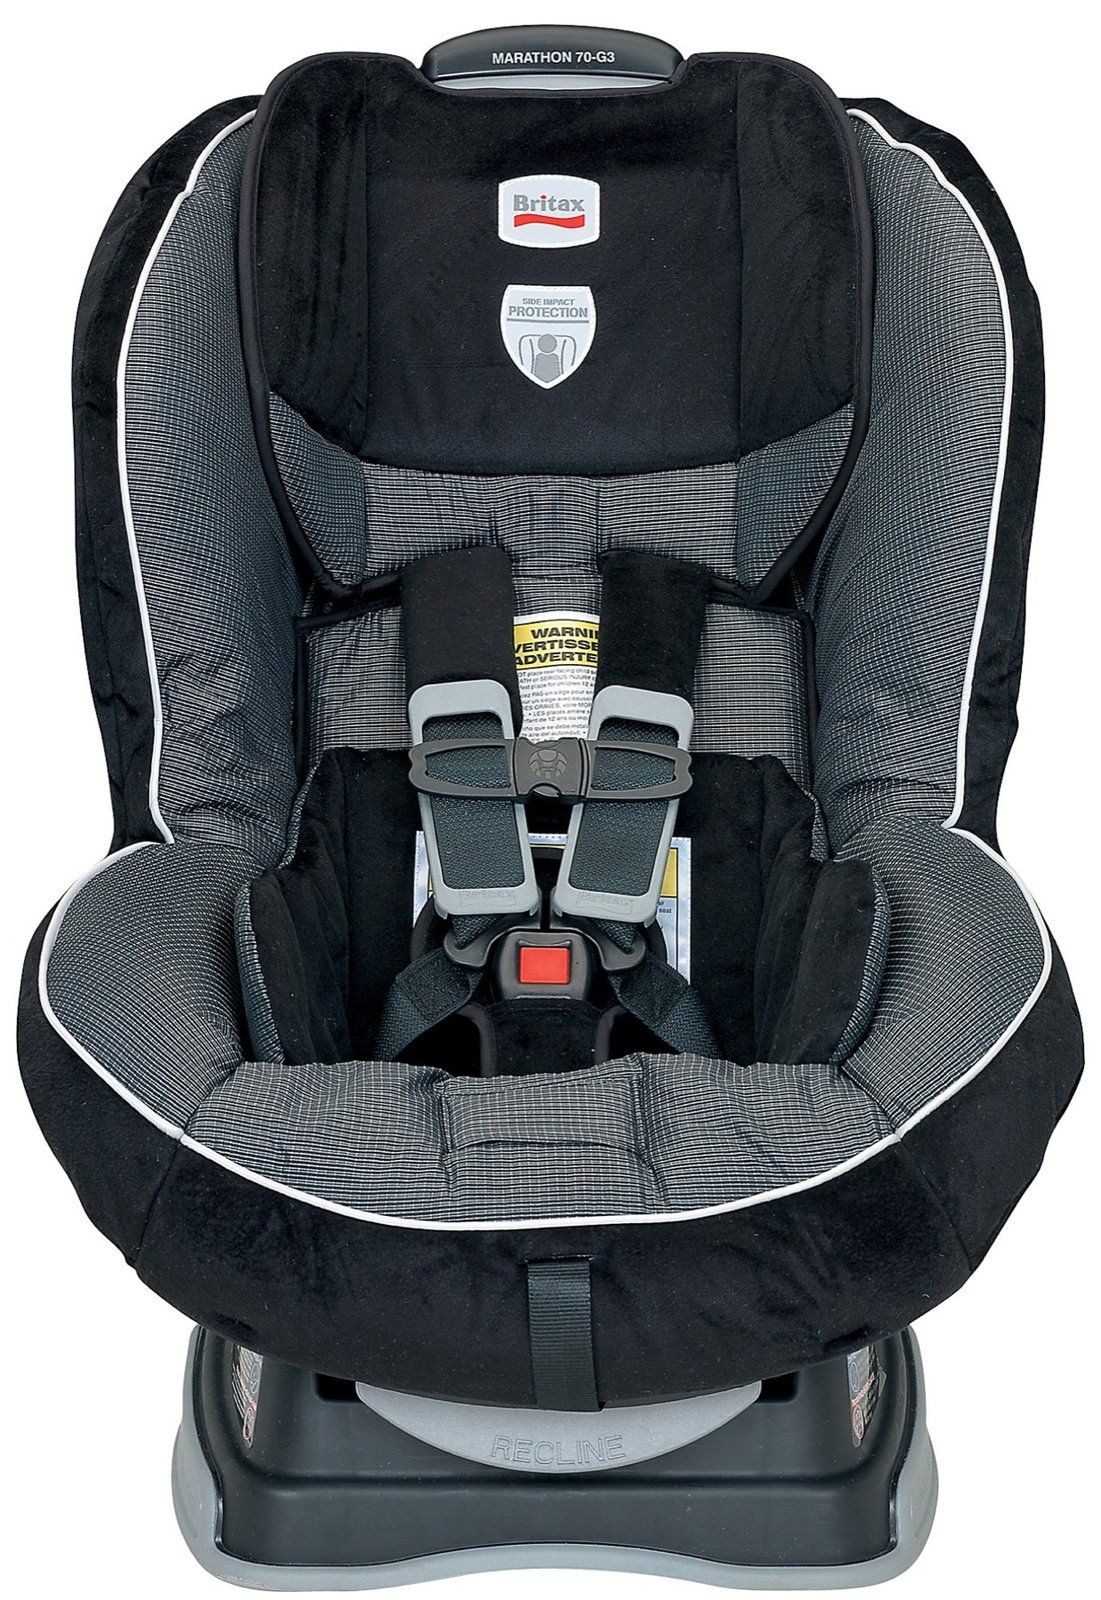 Inlu Lets You Pitch In On Baby Necessities Such As This 232 Britax Marathon 70 G3